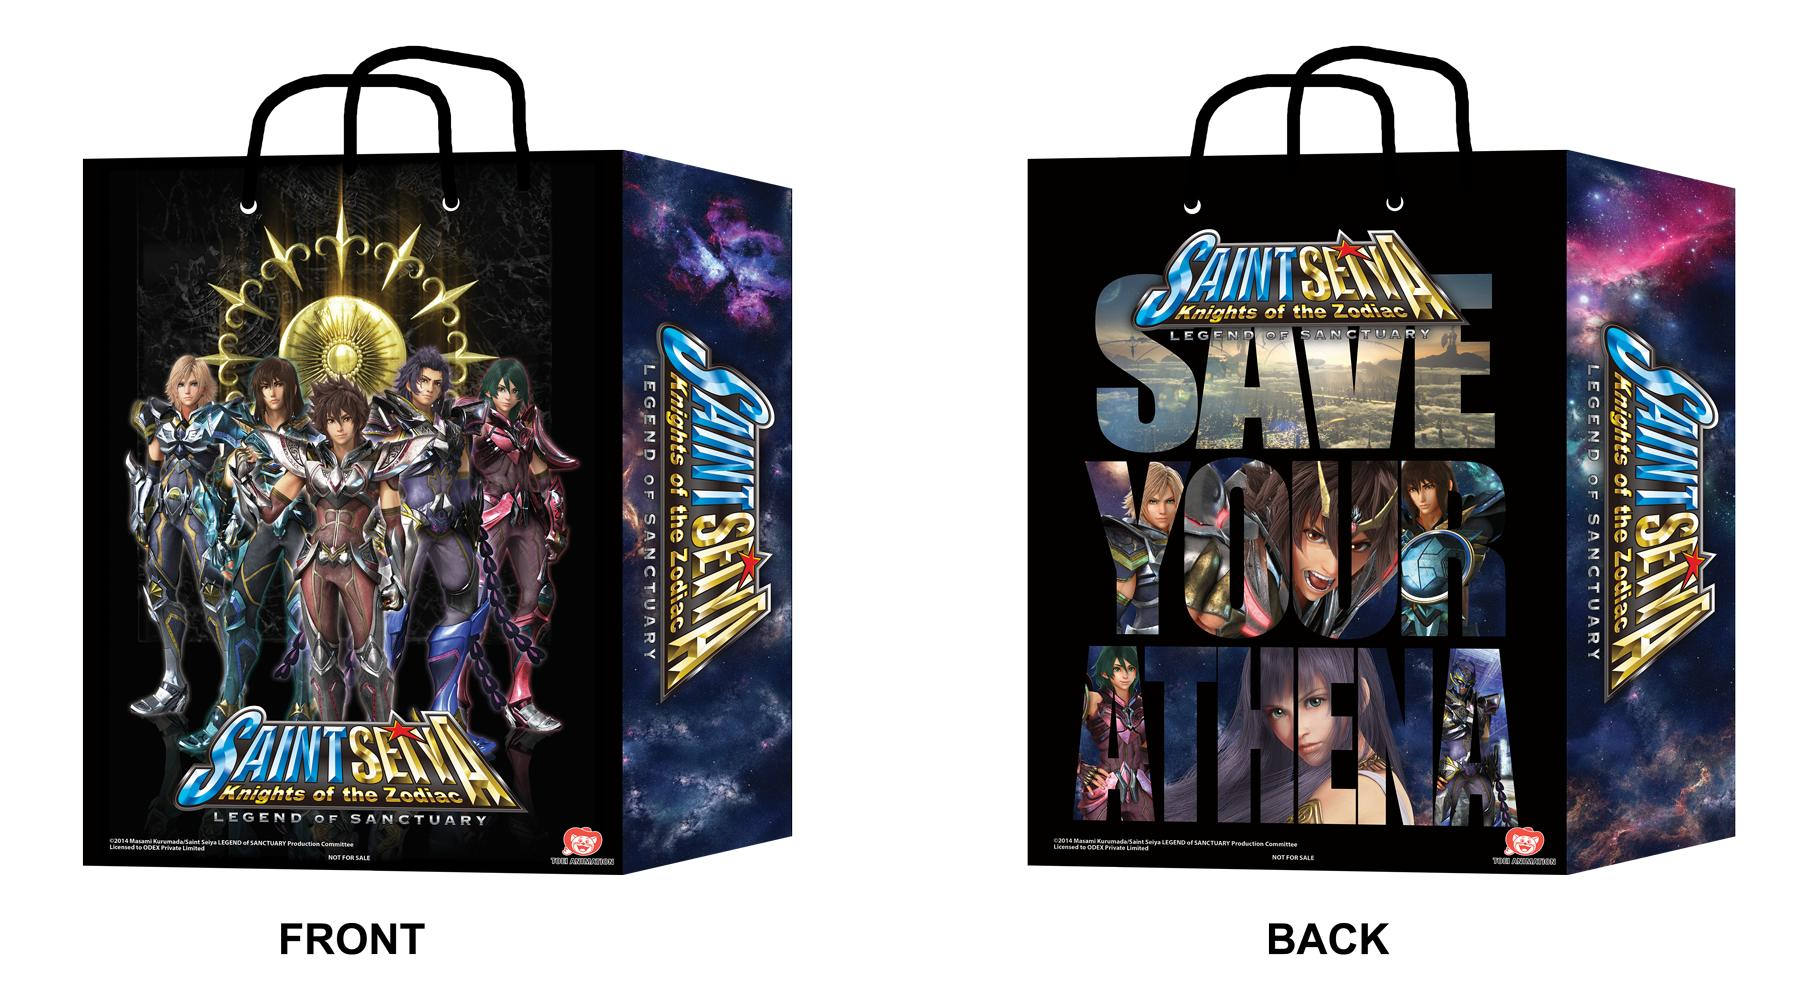 SAINT SEIYA : LEGEND OF SANCTUARY Opening In SG on 09 Oct